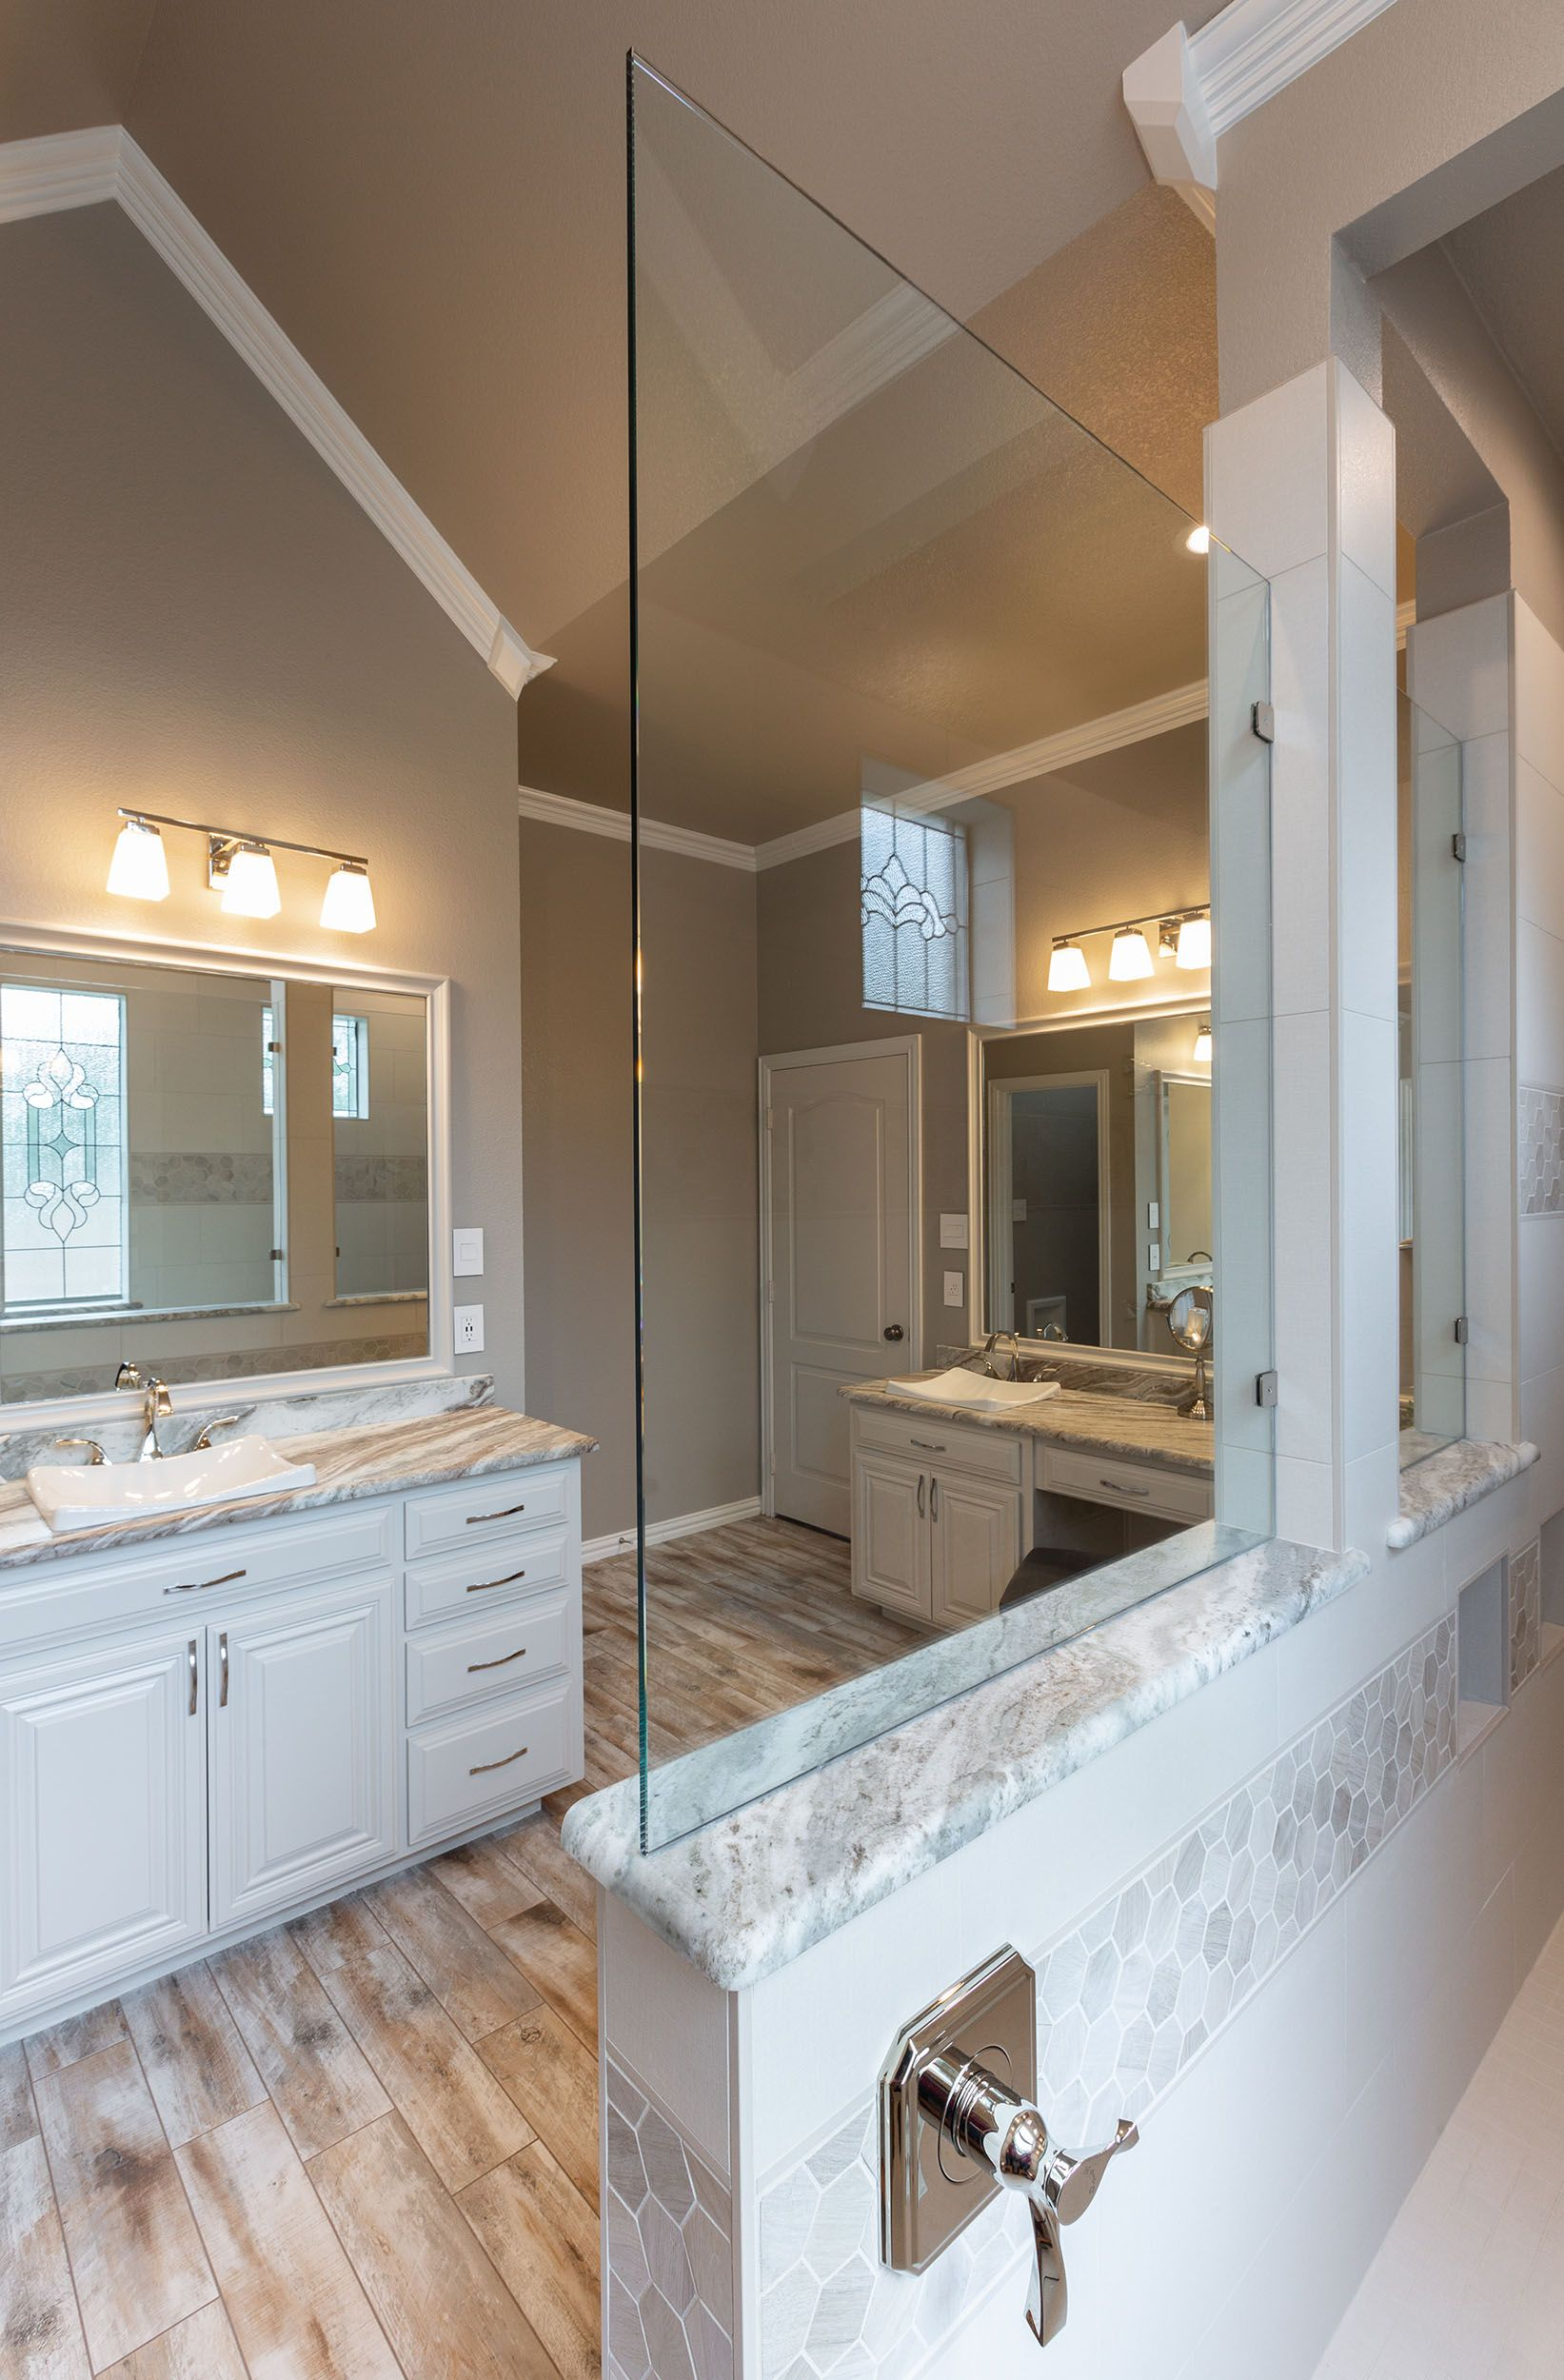 Bathroom And Kitchen Facelifts Have Become Even More Popular In The Hgtv Era They Can Take A Lackluster Space A In 2020 Kitchen Facelift Kitchens Bathrooms Facelift